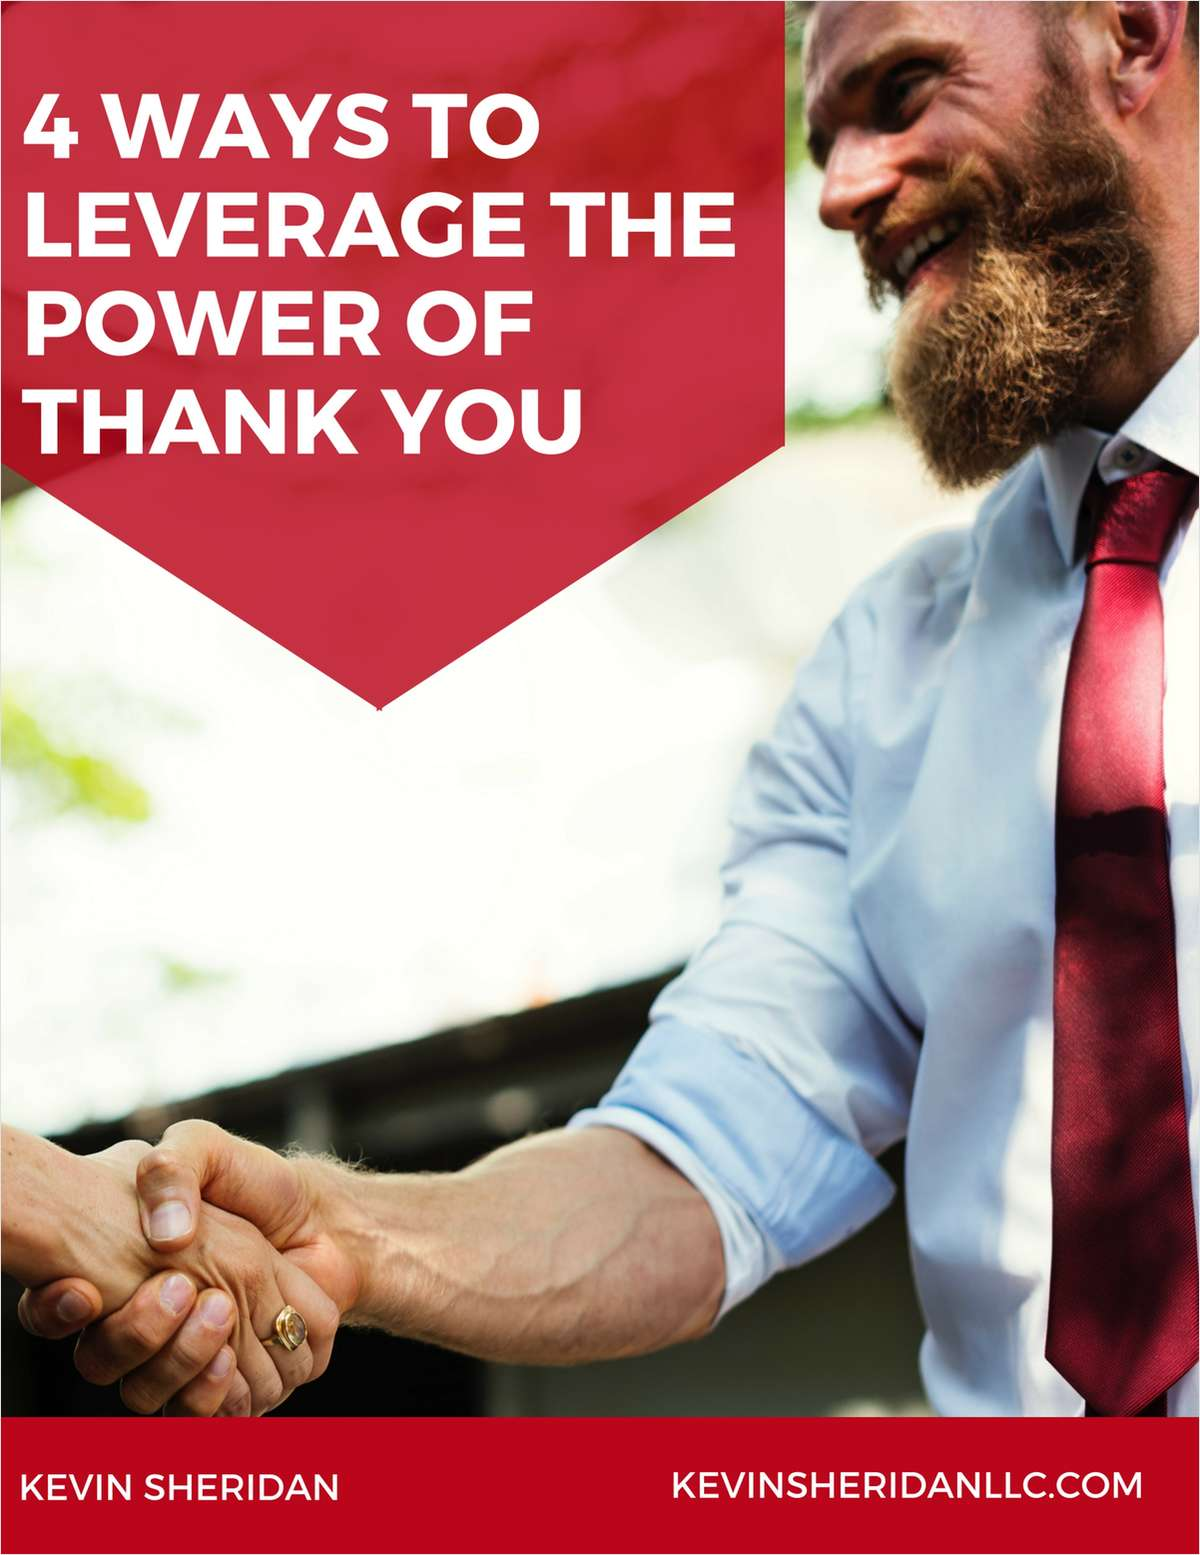 4 Ways to Leverage the Power of Thank You